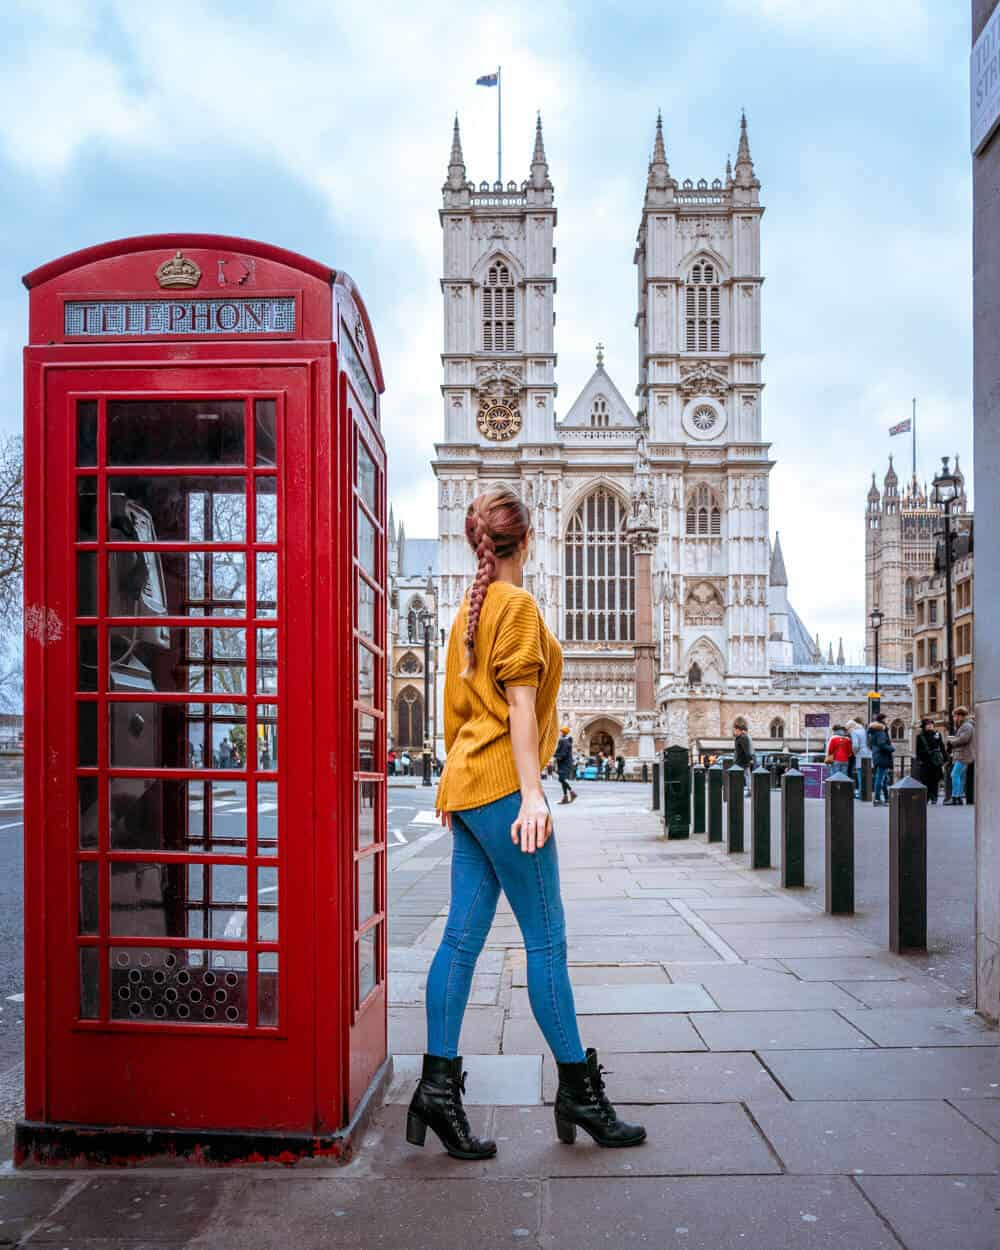 A red phone box provides an iconic foreground for the photogenic Westminster Abbey